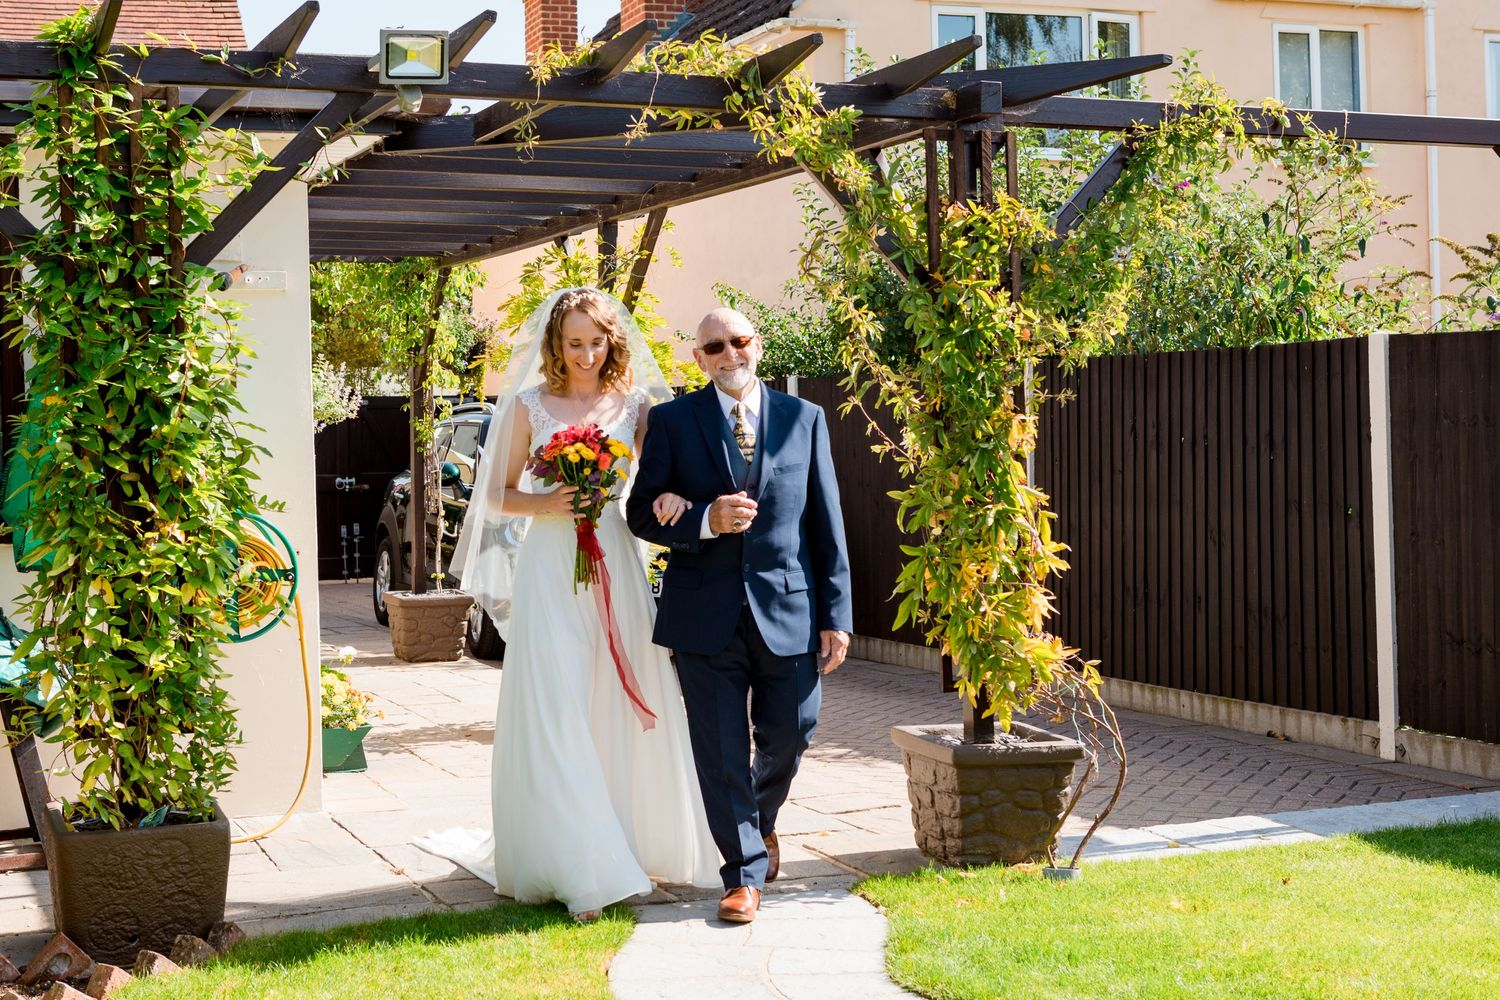 Small Garden Wedding Bride being walk down garden path by father